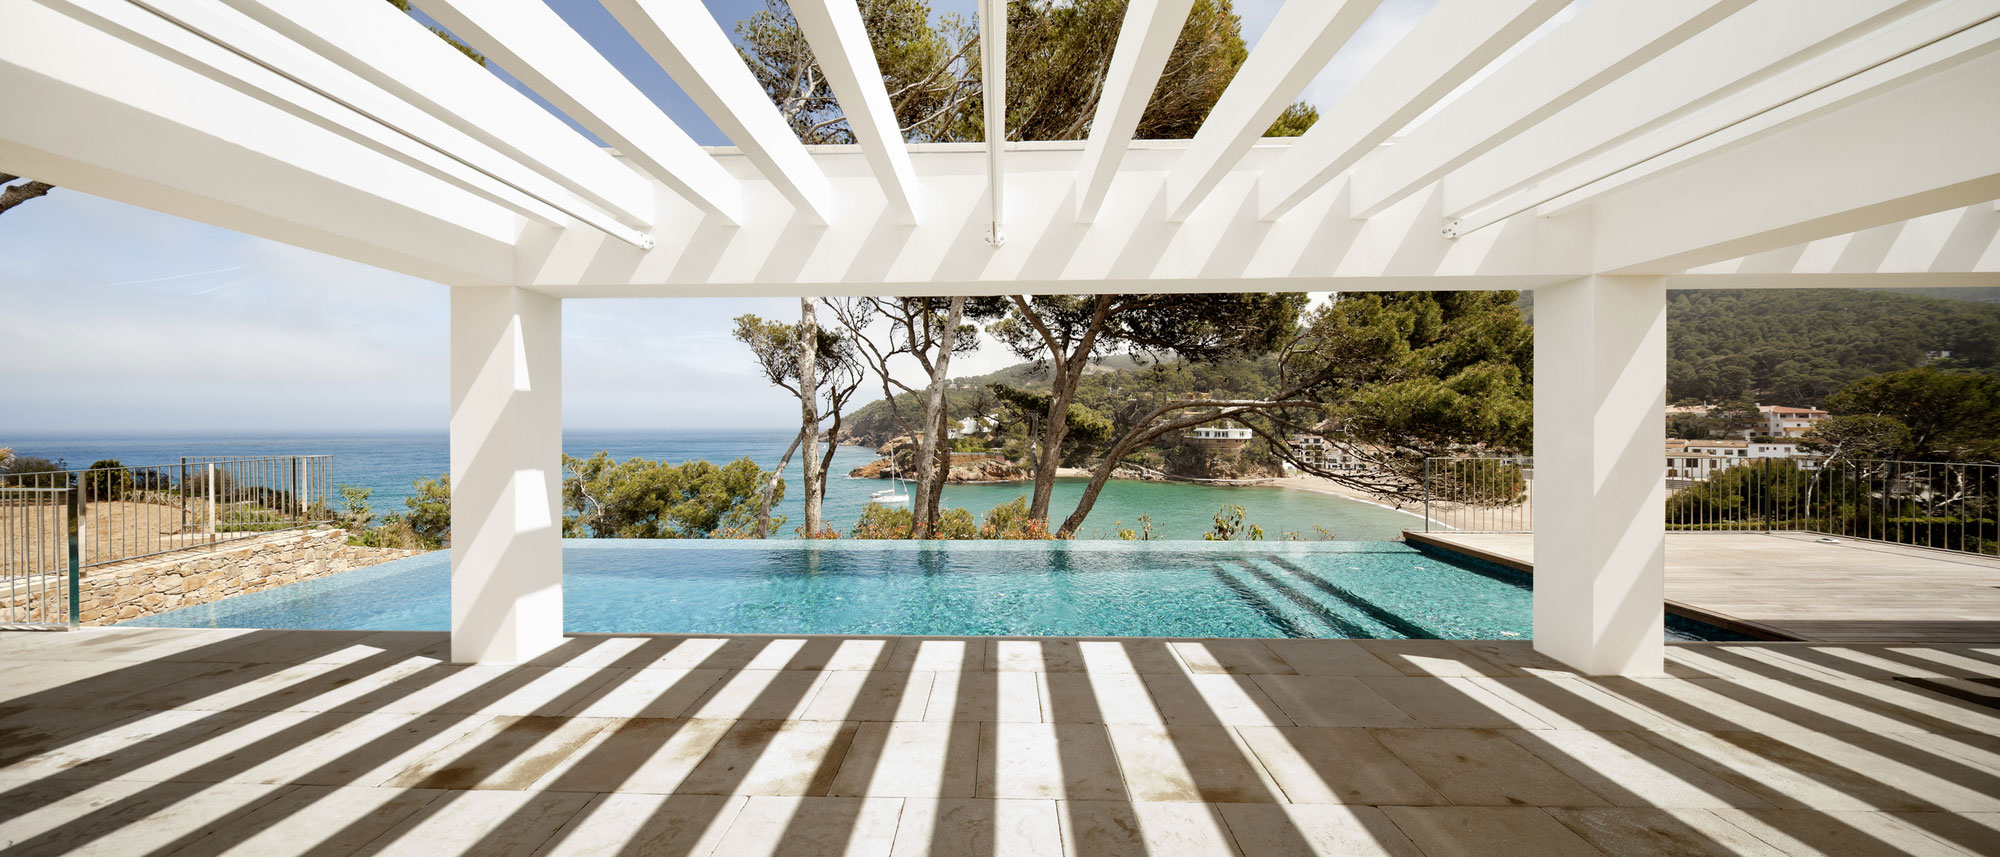 Veranda, Pool, Sea Views, Waterfront House in Costa Brava, Spain